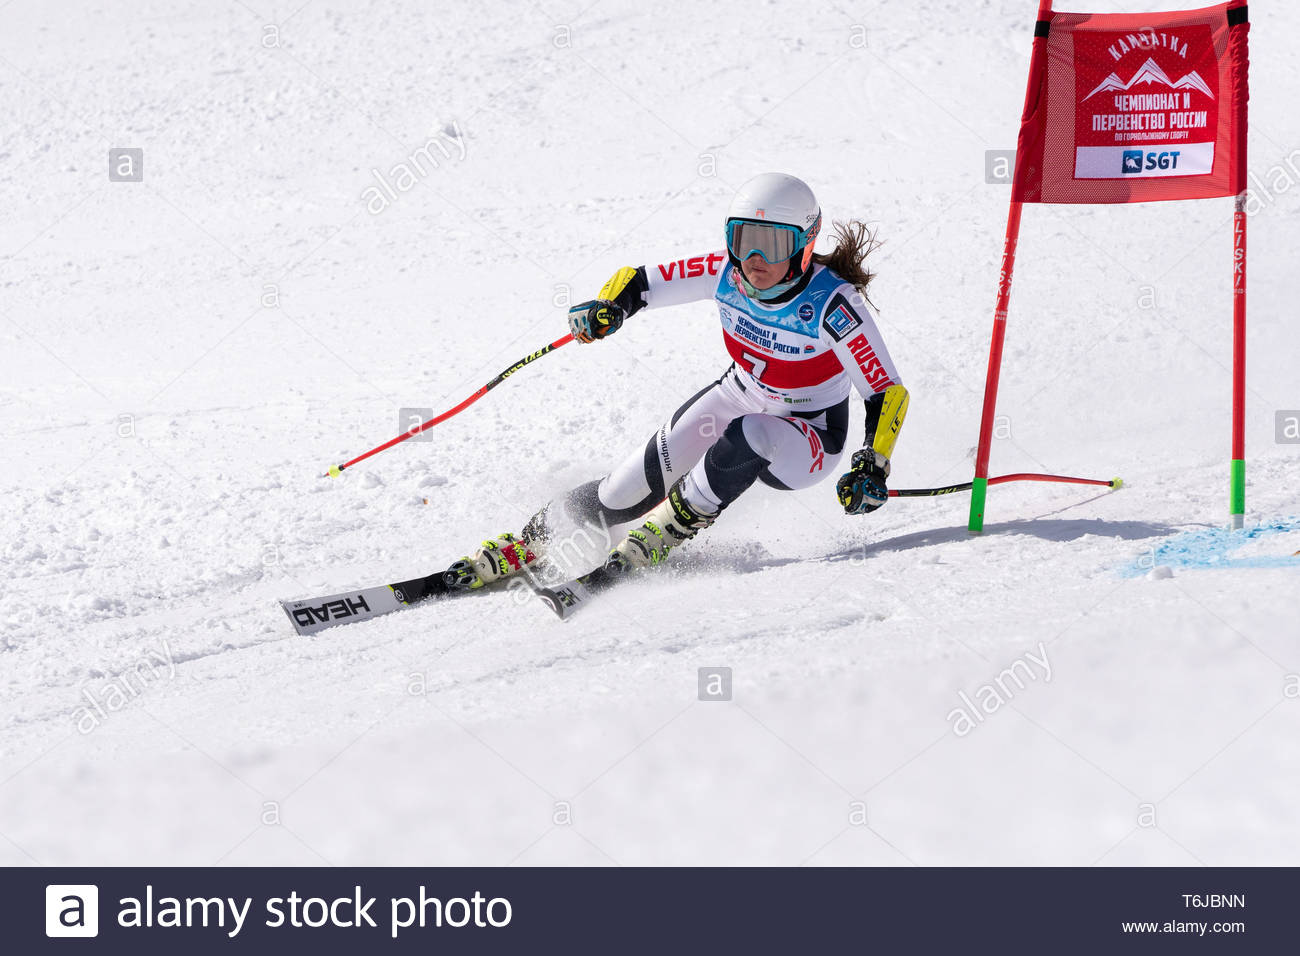 KAMCHATKA PENINSULA, RUSSIAN FEDERATION - APRIL 1, 2019: Mountain skier Popova Ekaterina (Kamchatka Krai) skiing down snowy mountain slope. Russian Wo - Stock Image